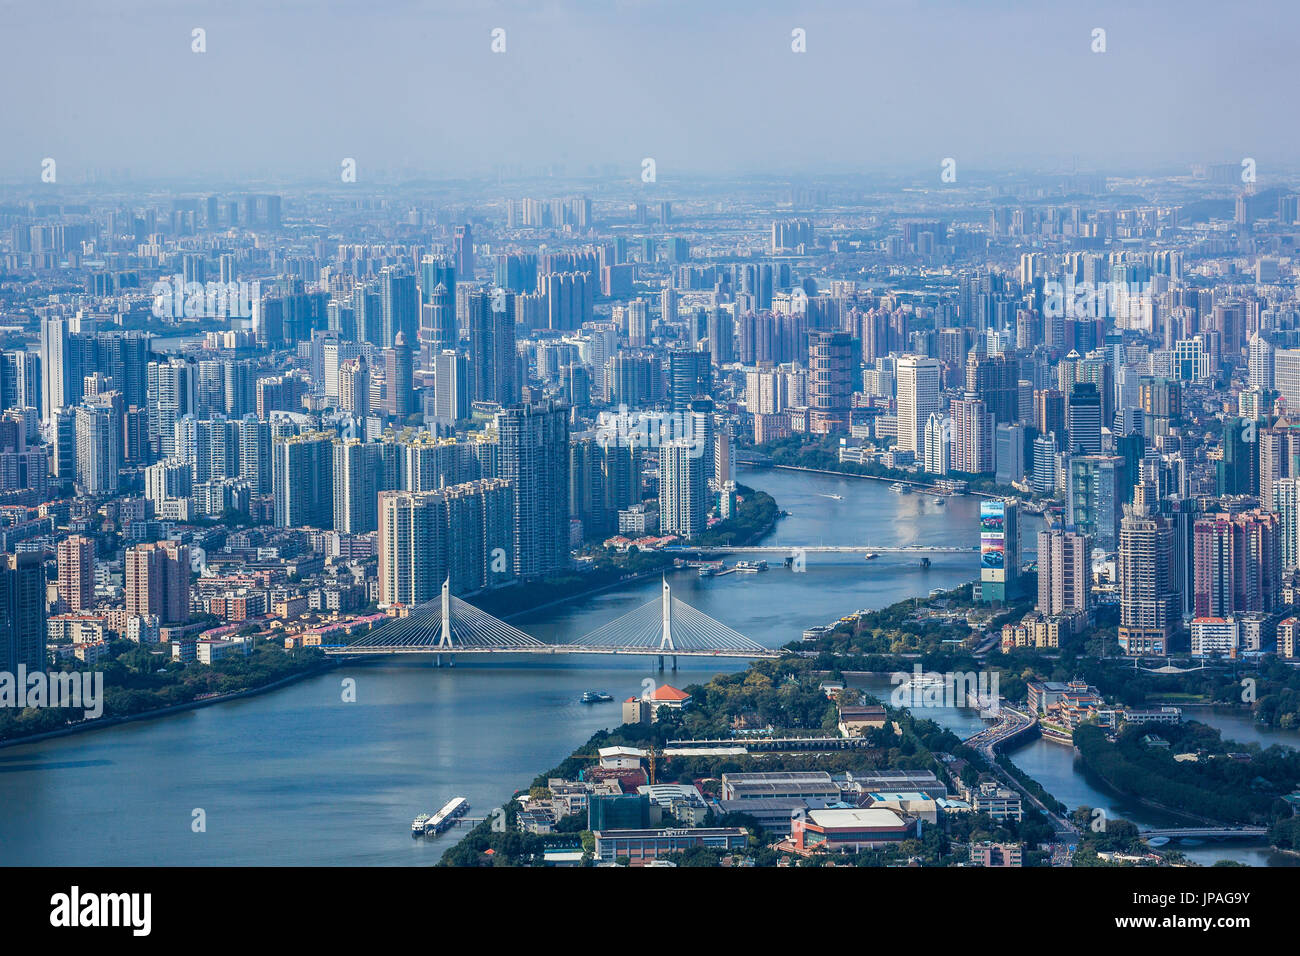 China, Guangdong Province, Guangzhou City, Central Guangzhou skyline, Pearl River - Stock Image